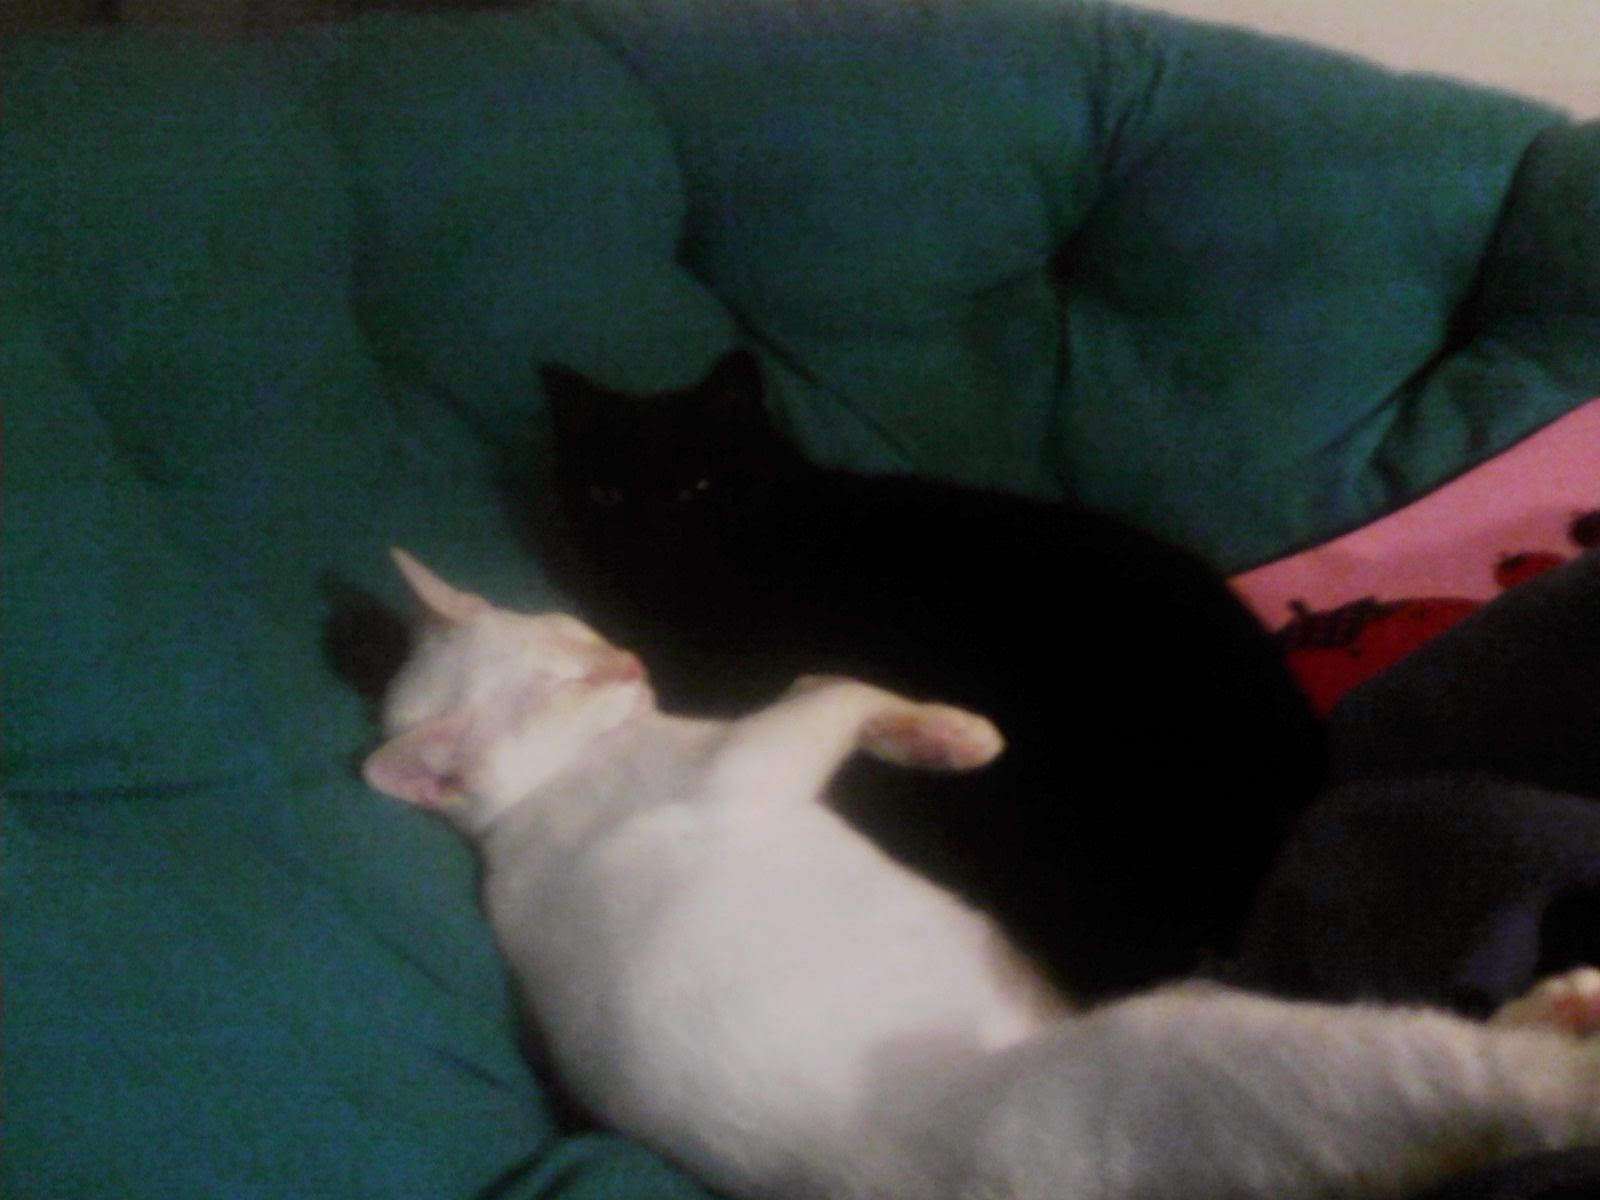 image is a white cat & a black cat snuggling in a green papisan chair